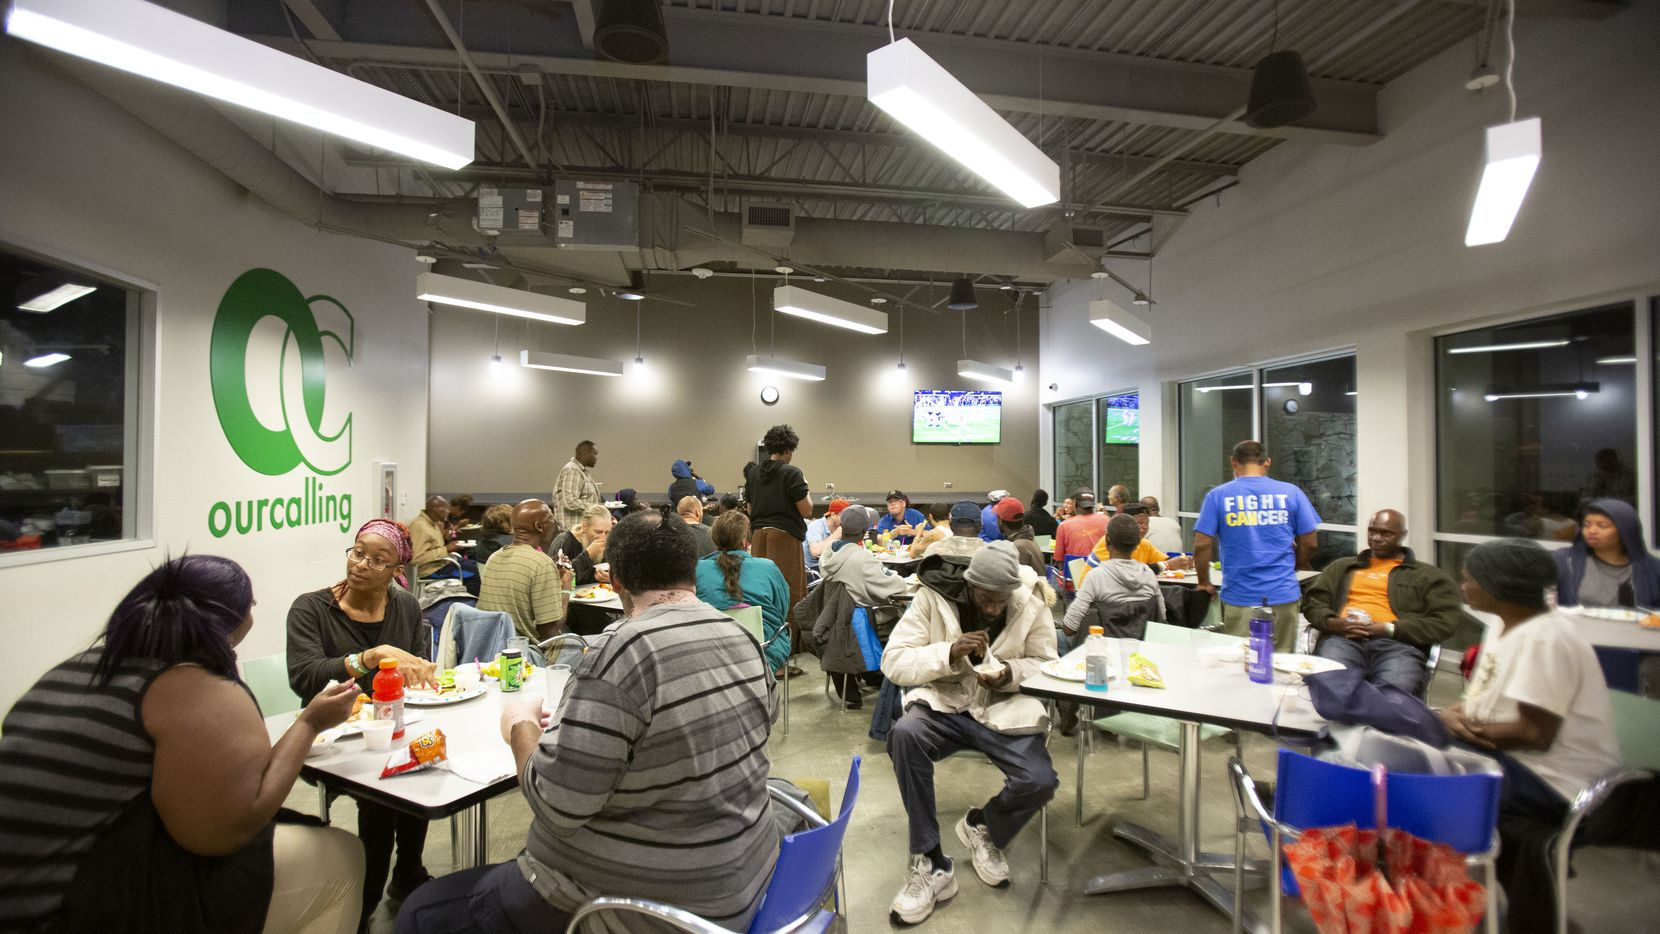 Every Monday night during football season, OurCalling, a faith-based, daytime outreach center for the unsheltered homeless, holds a Monday Night Football party drawing over 150 to the center in Dallas, Texas, Monday, November 5, 2018.